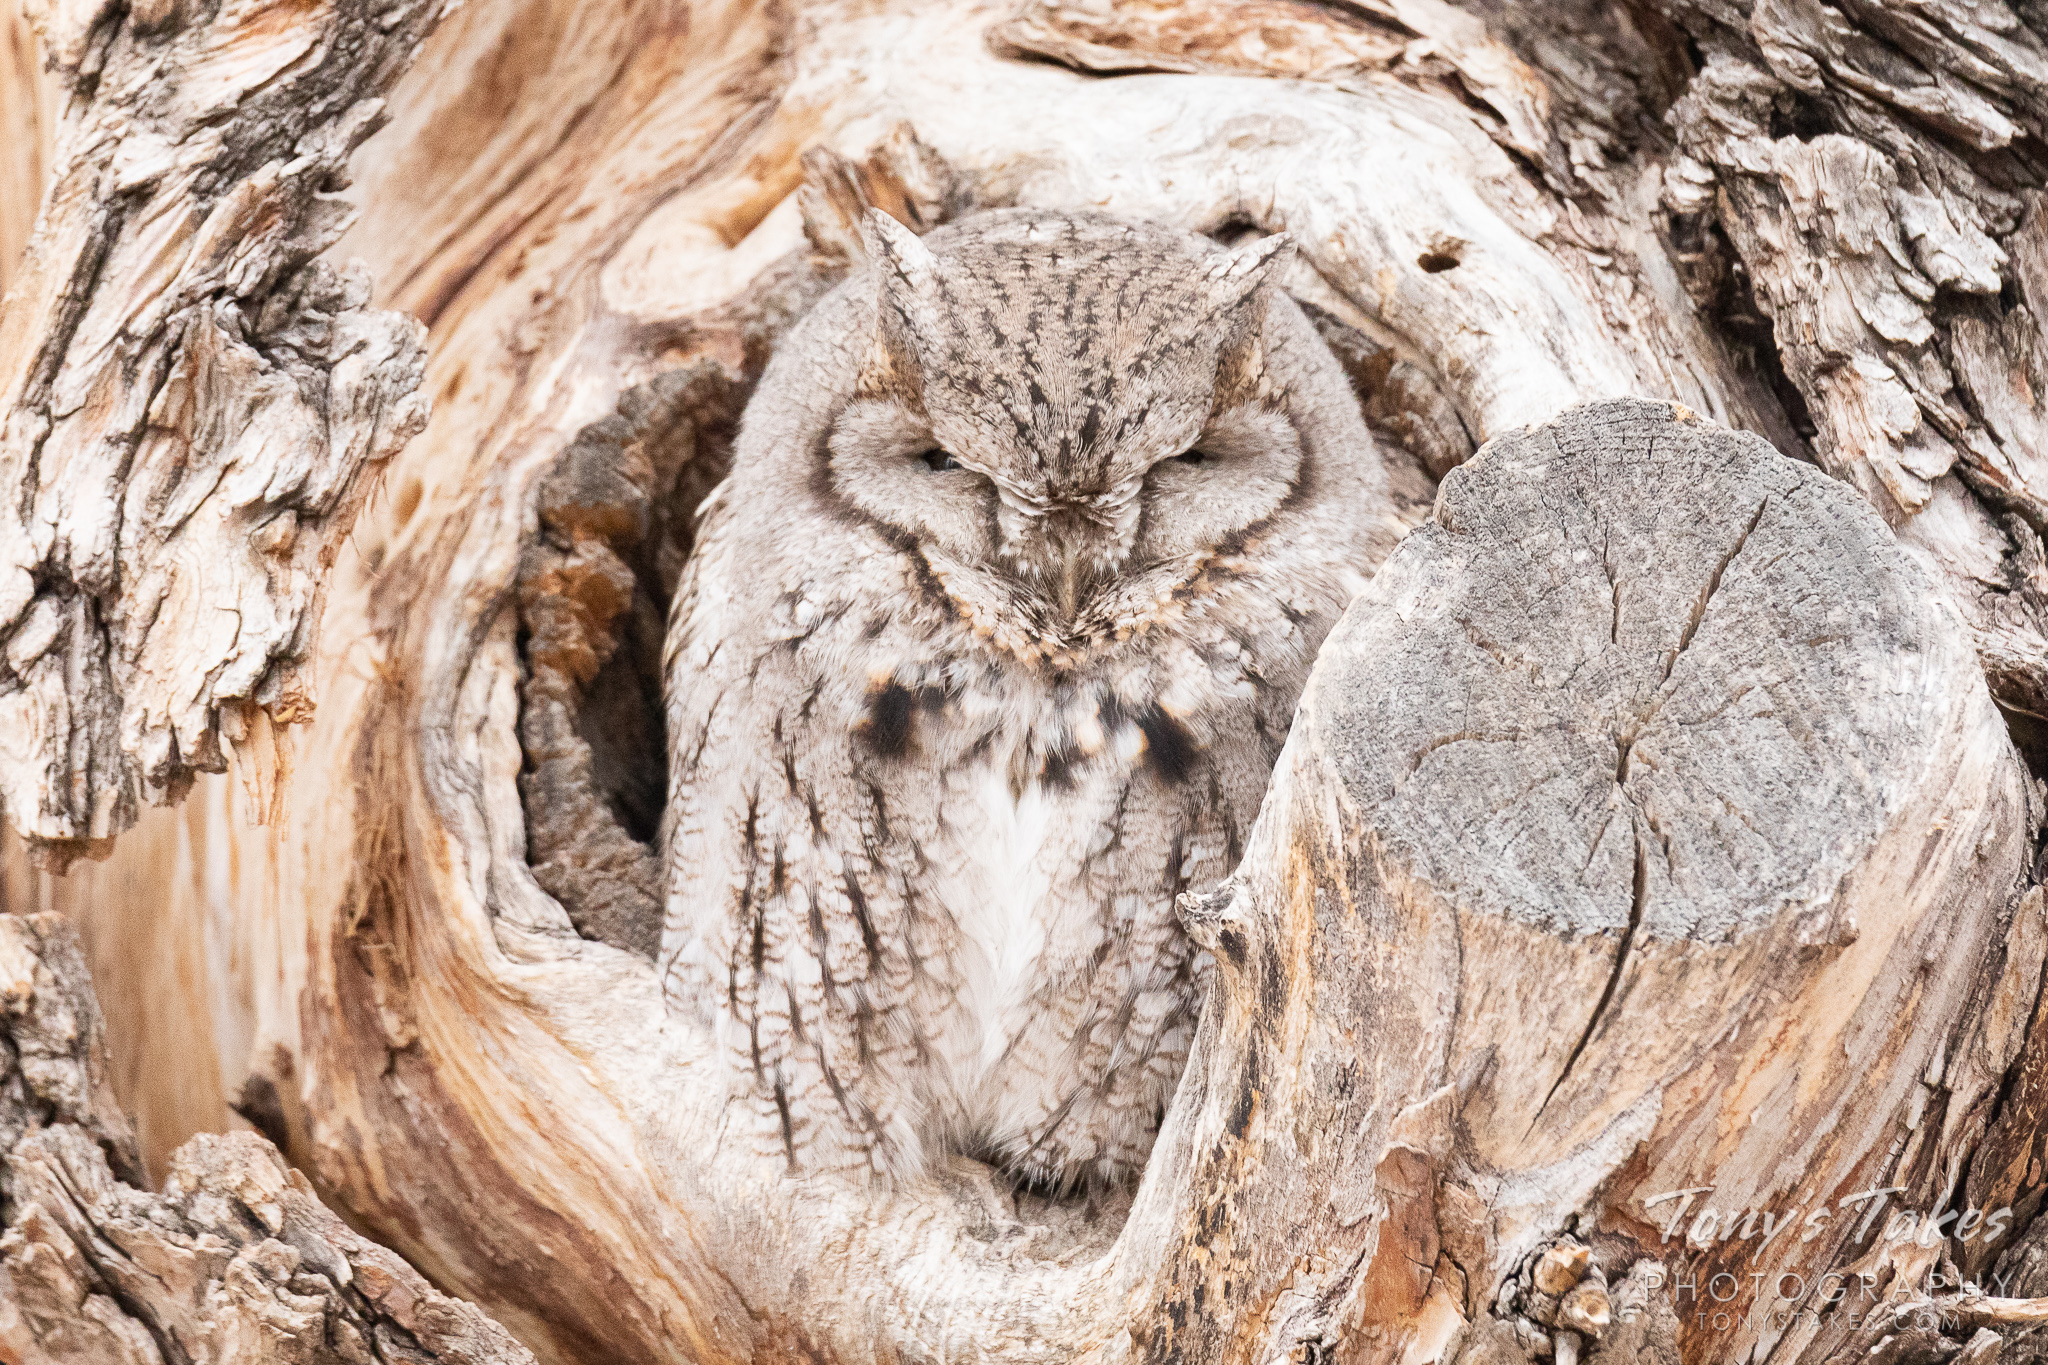 An eastern screech owl takes a nap in the opening to a void in a tree. (© Tony's Takes)